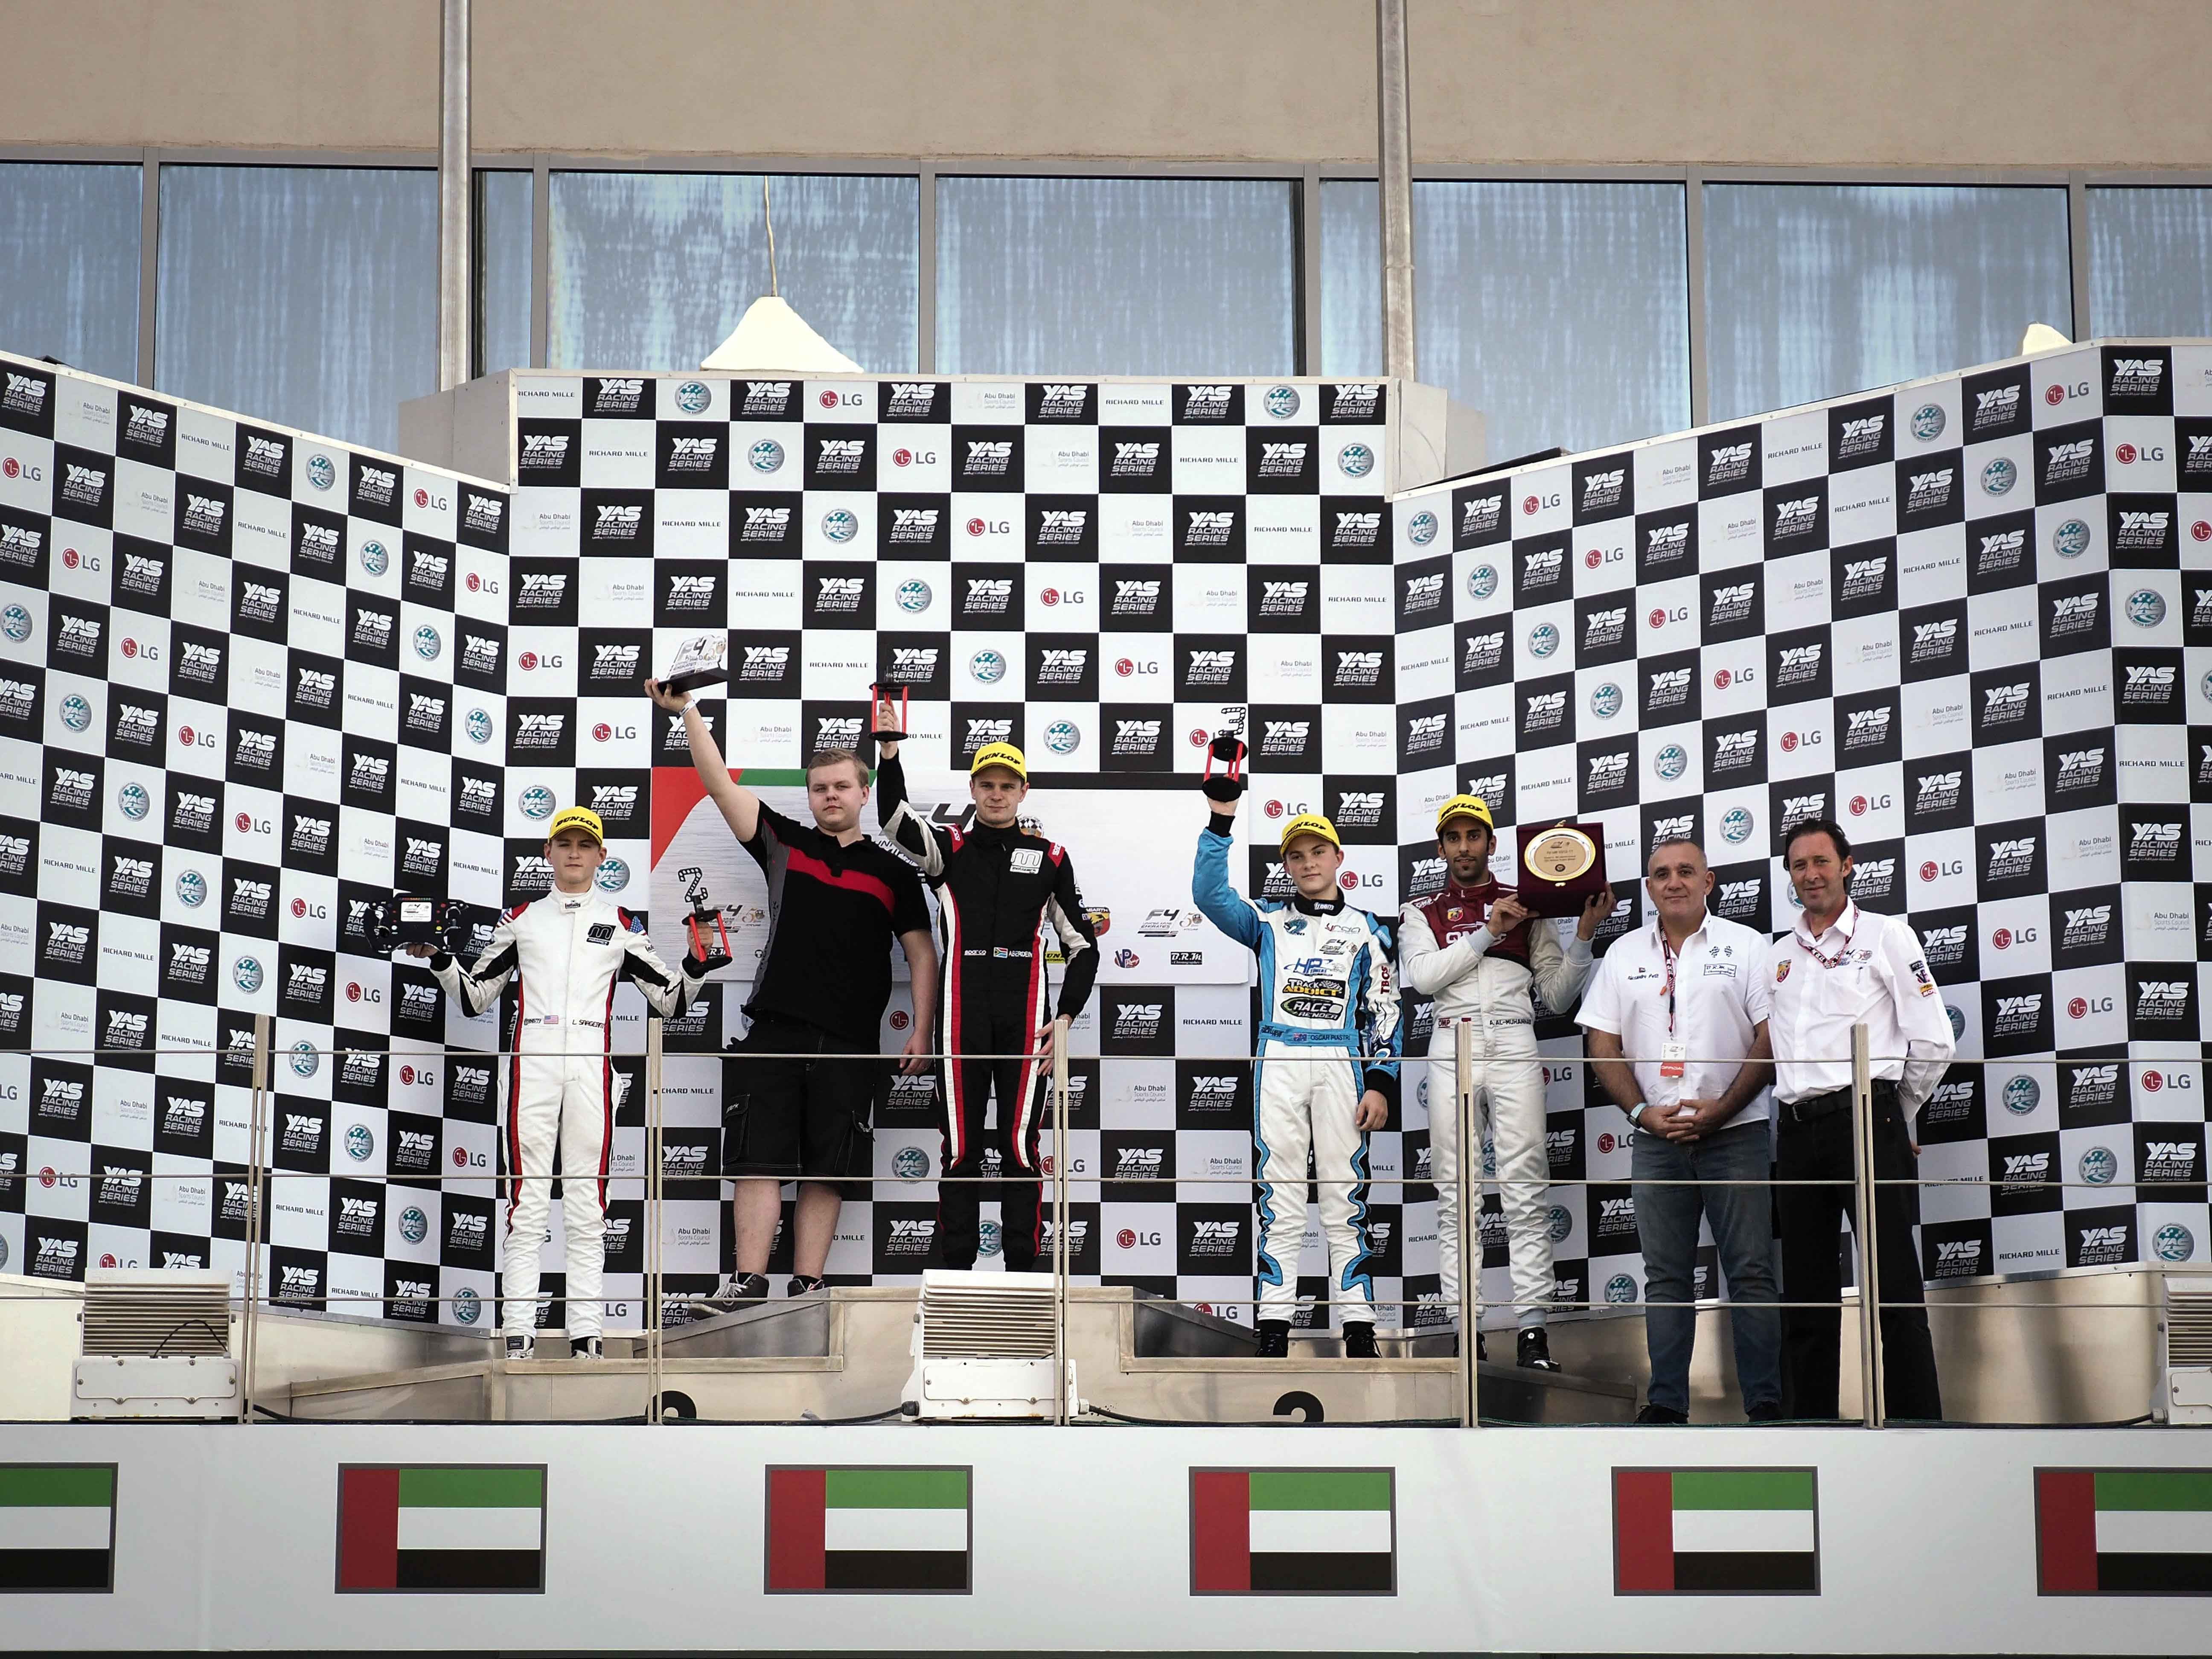 2017F4UAE_Round4_Race 11 Podium.jpg